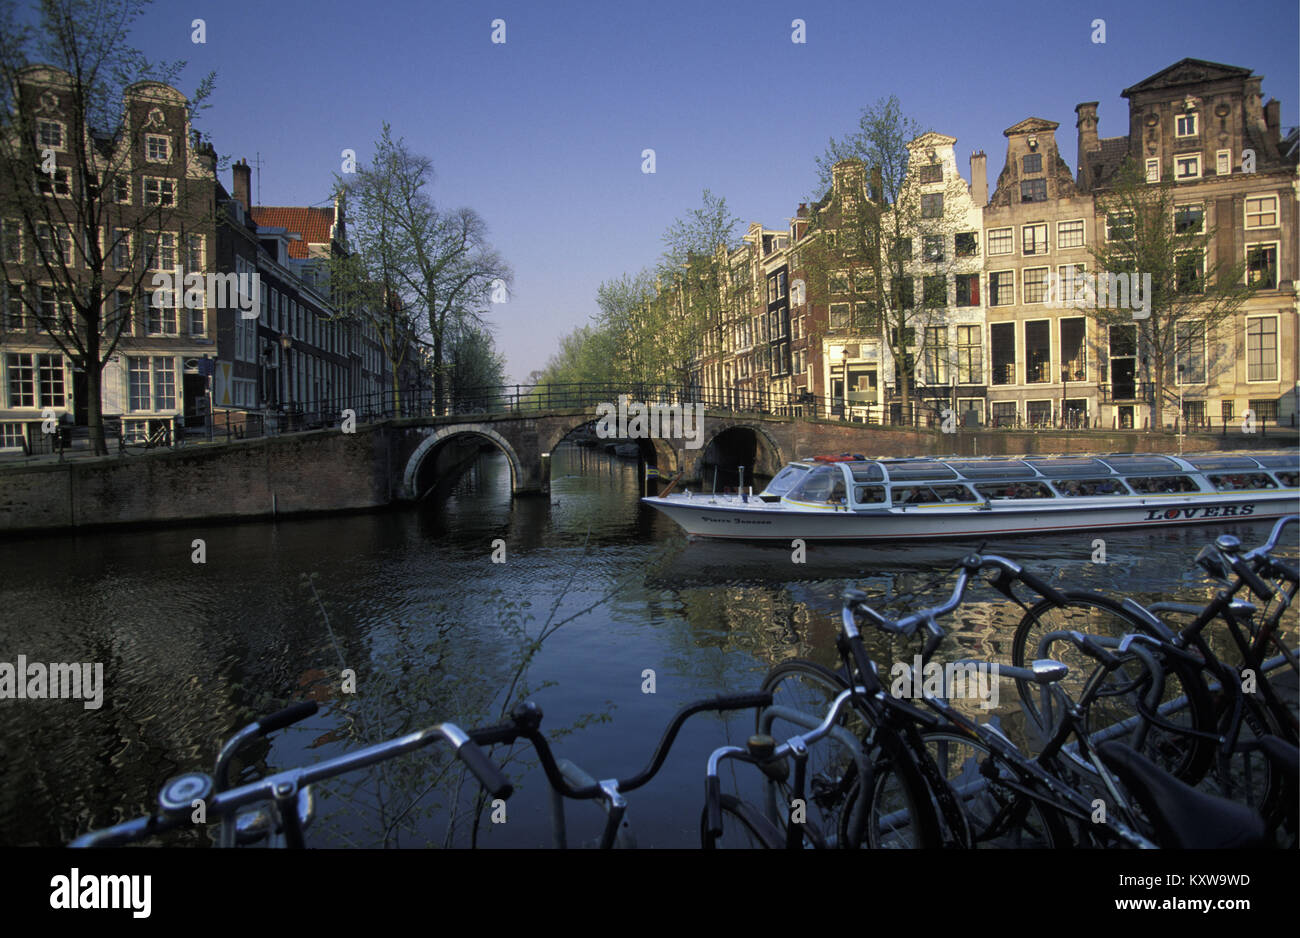 The Netherlands, Amsterdam, Canal called Herengracht.17th century. Bicycles. Canal or tour boat. - Stock Image